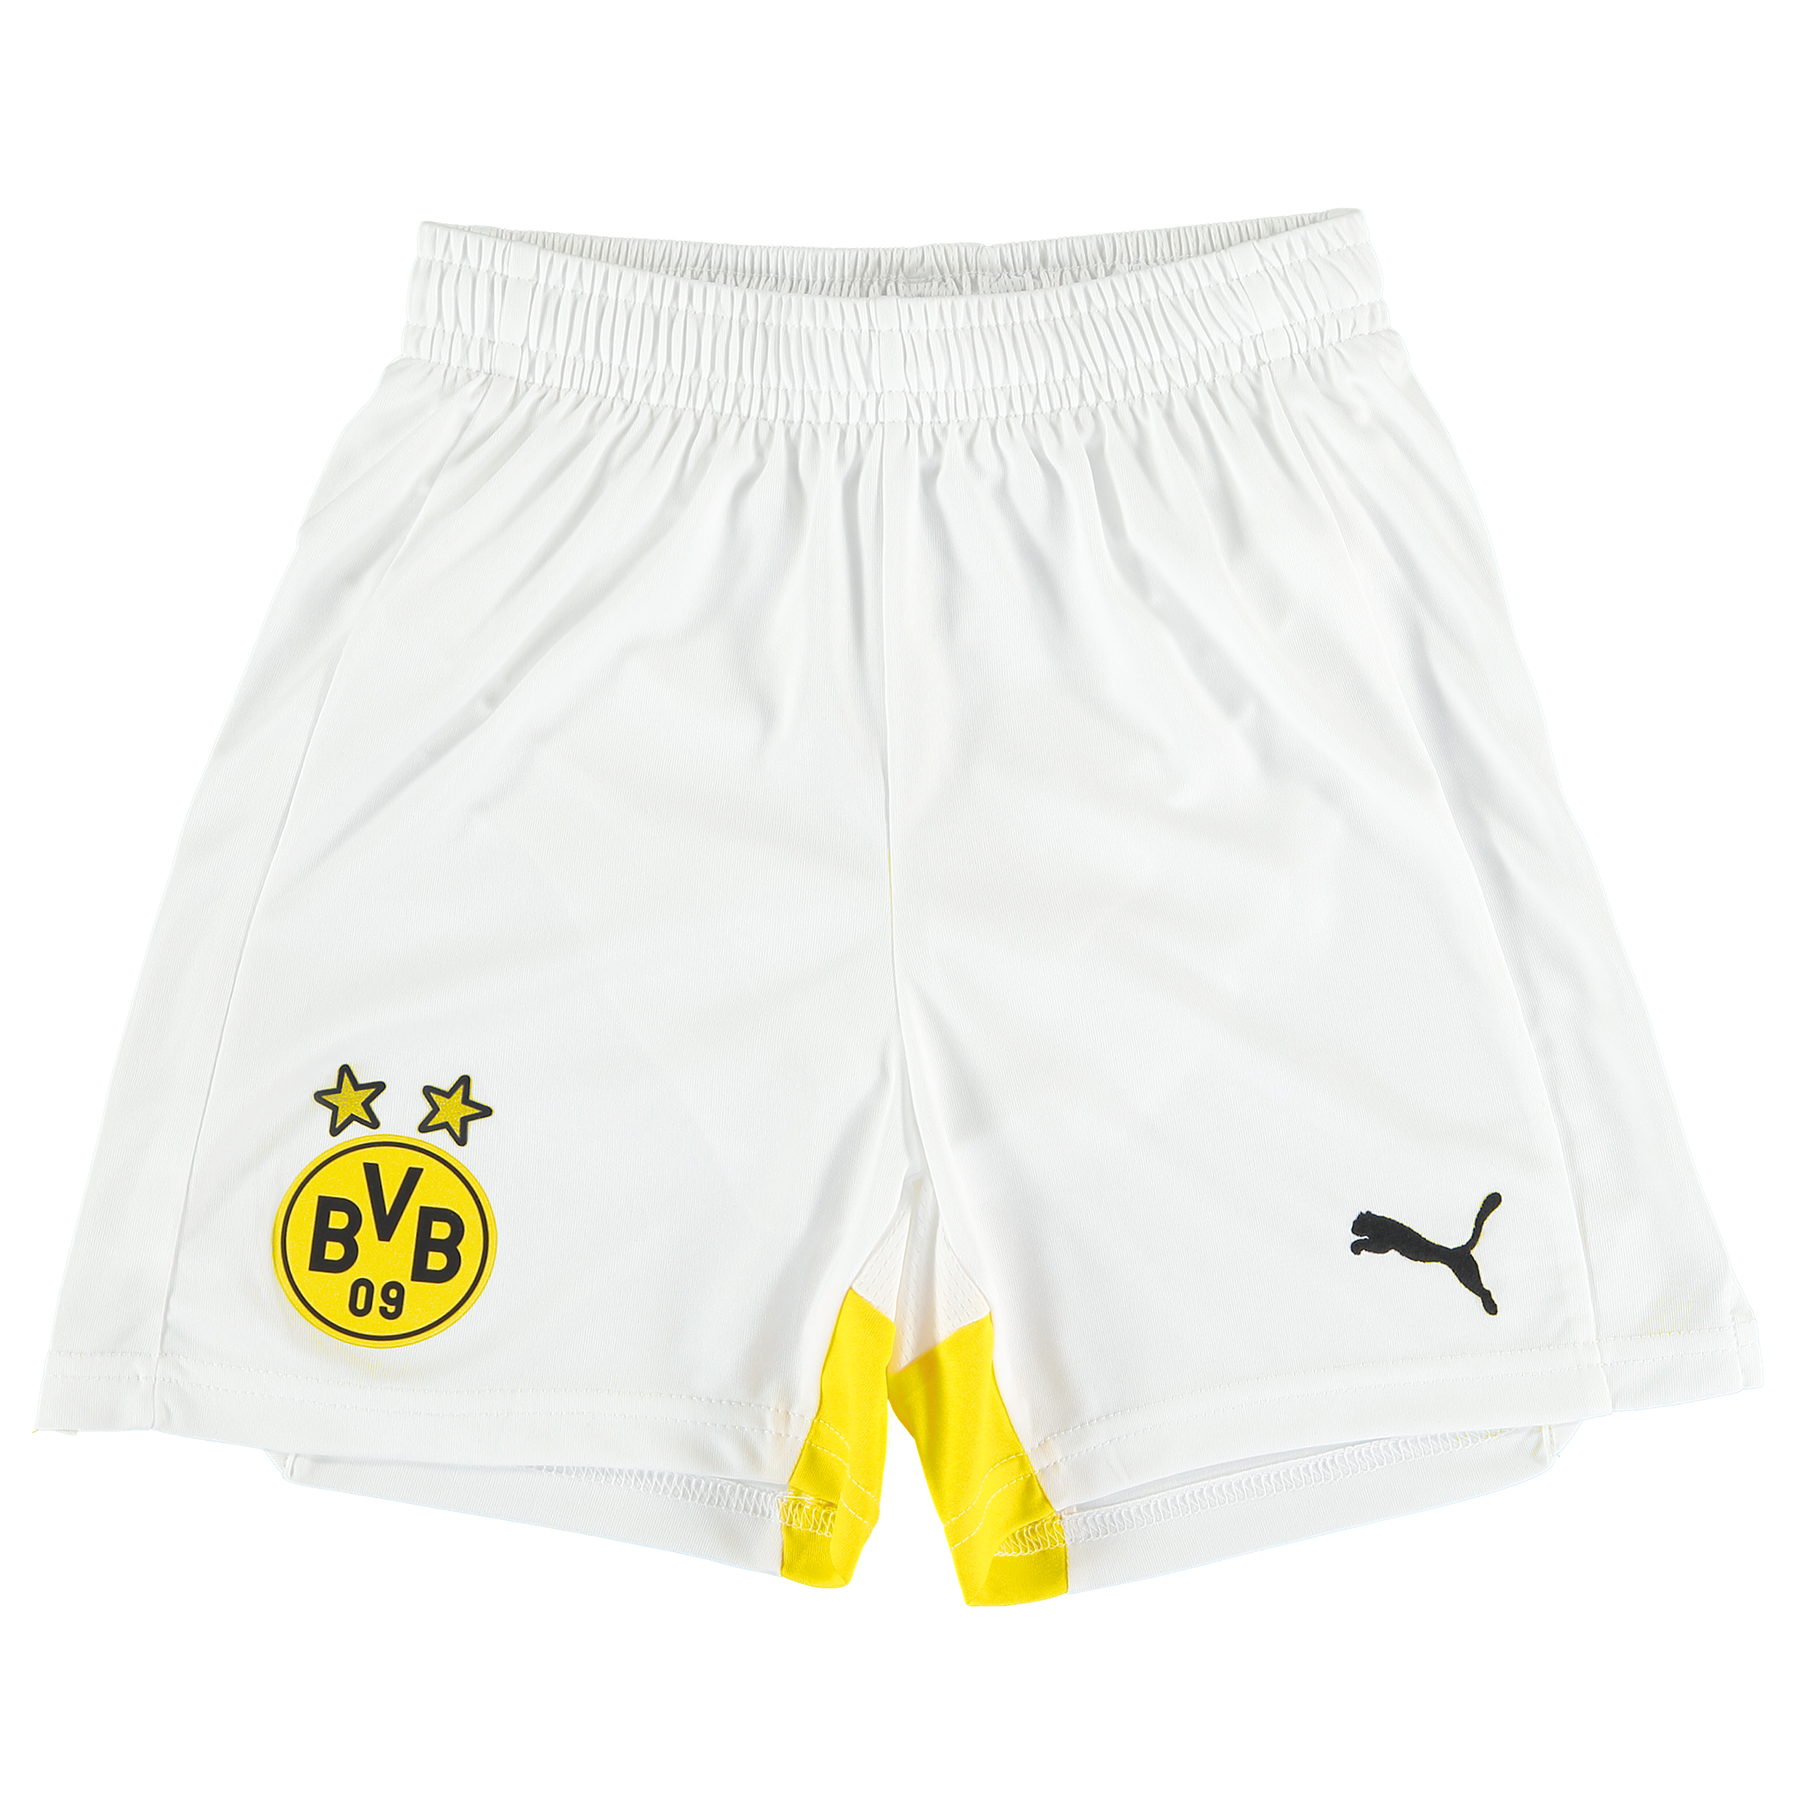 BVB Third Shorts 2015/16 – Kids White